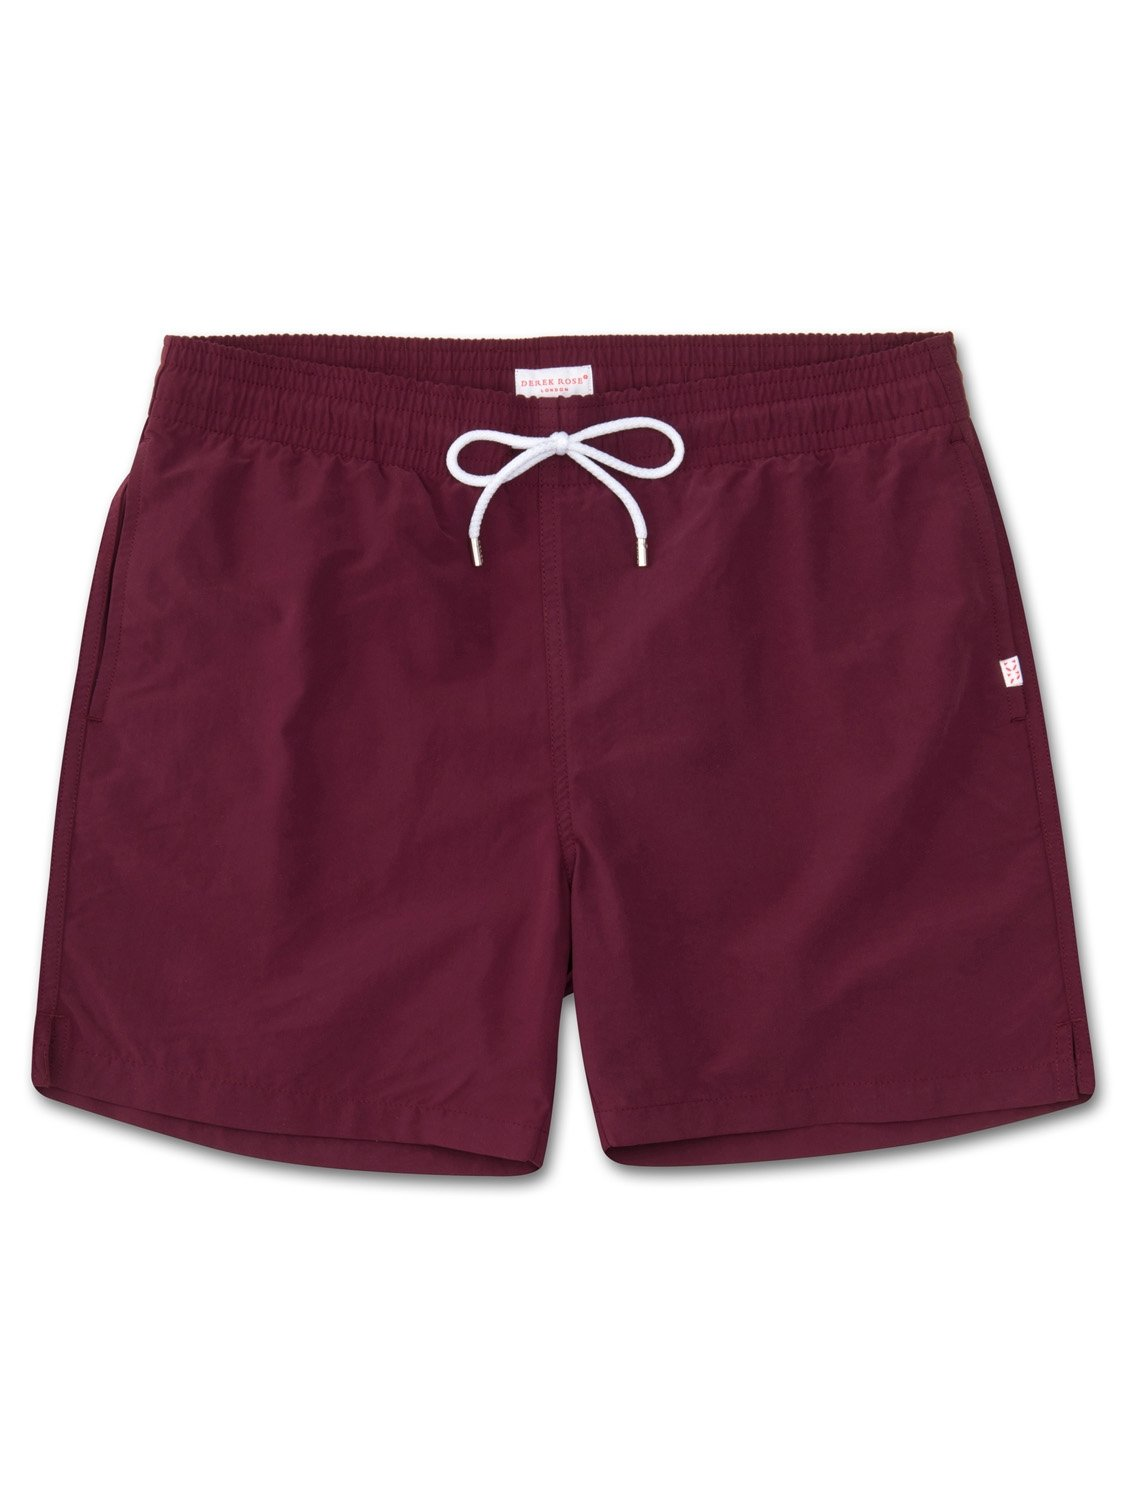 Men's Classic Fit Swim Shorts Aruba Burgundy